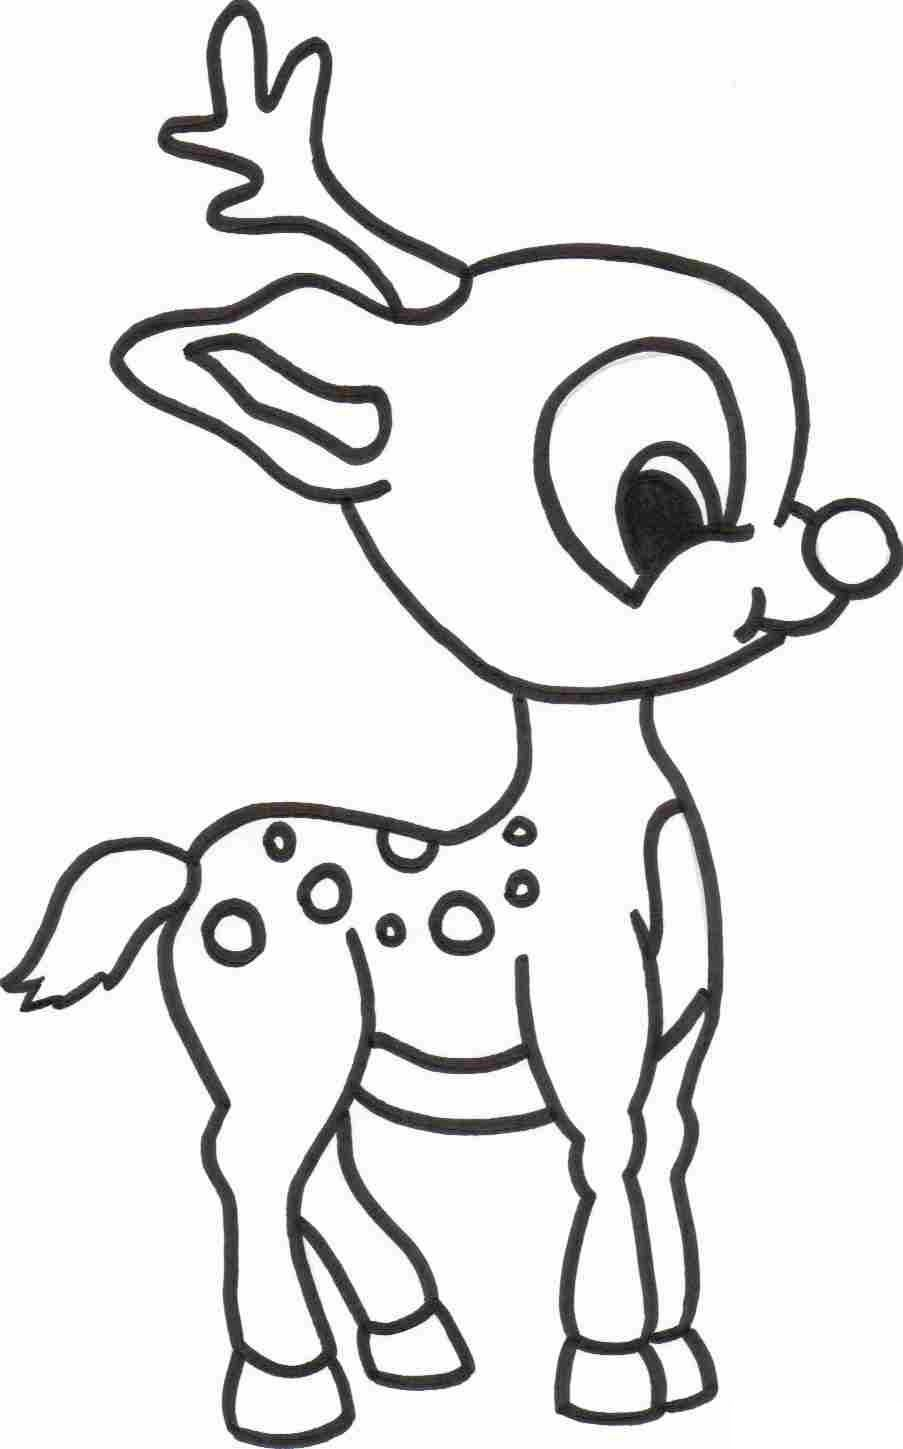 Rudolph coloring page for kids free coloring pages pinterest